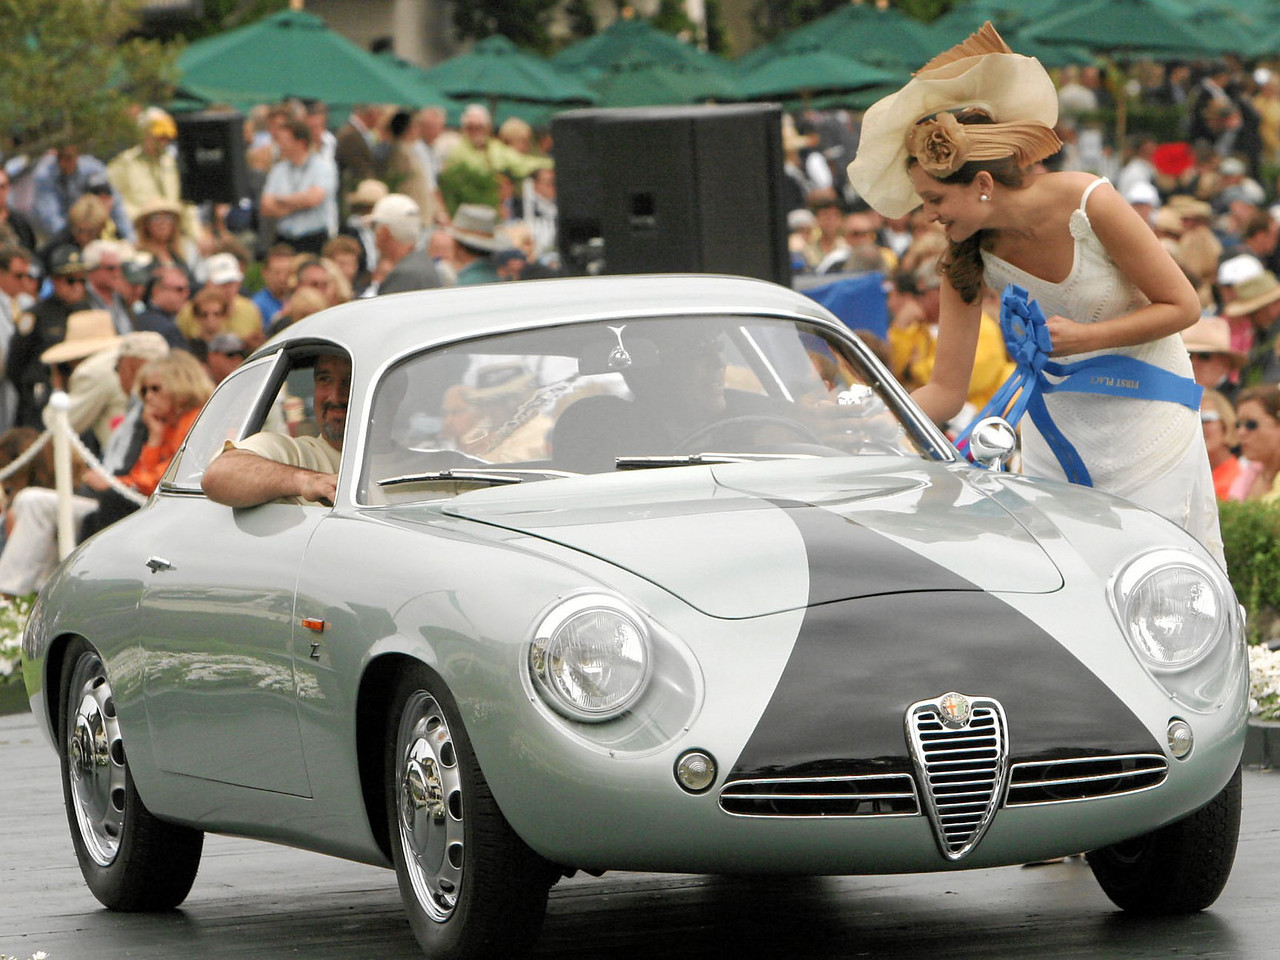 1962 Alfa Romeo SZ Coda Tronca Zagato Coupé owned by Scott Gauthier from Scottsdale, Arizona 1st  Class E-7  (Alfa Romeo Postwar)